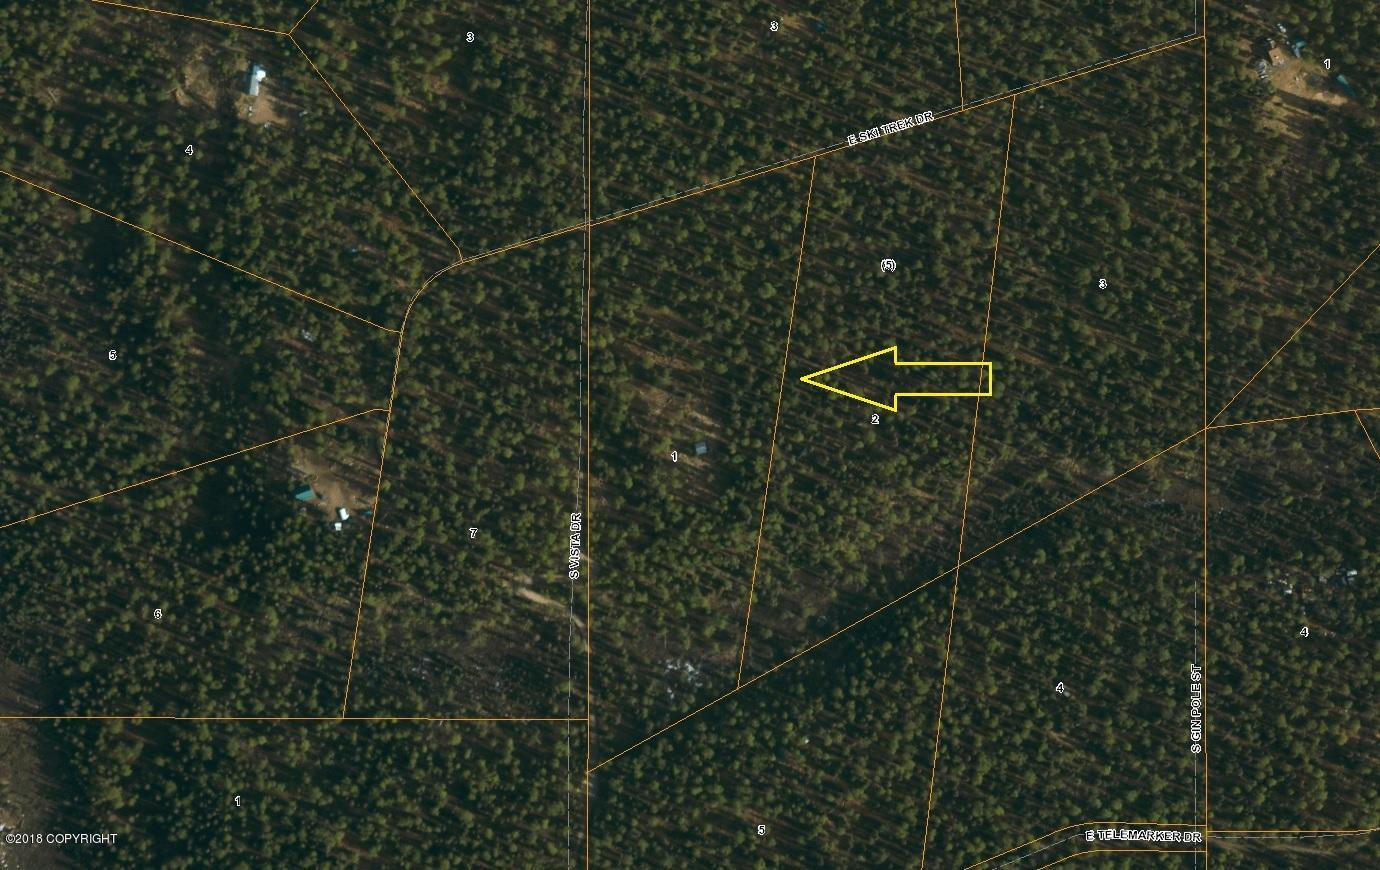 10 acres in Talkeetna for $22,500